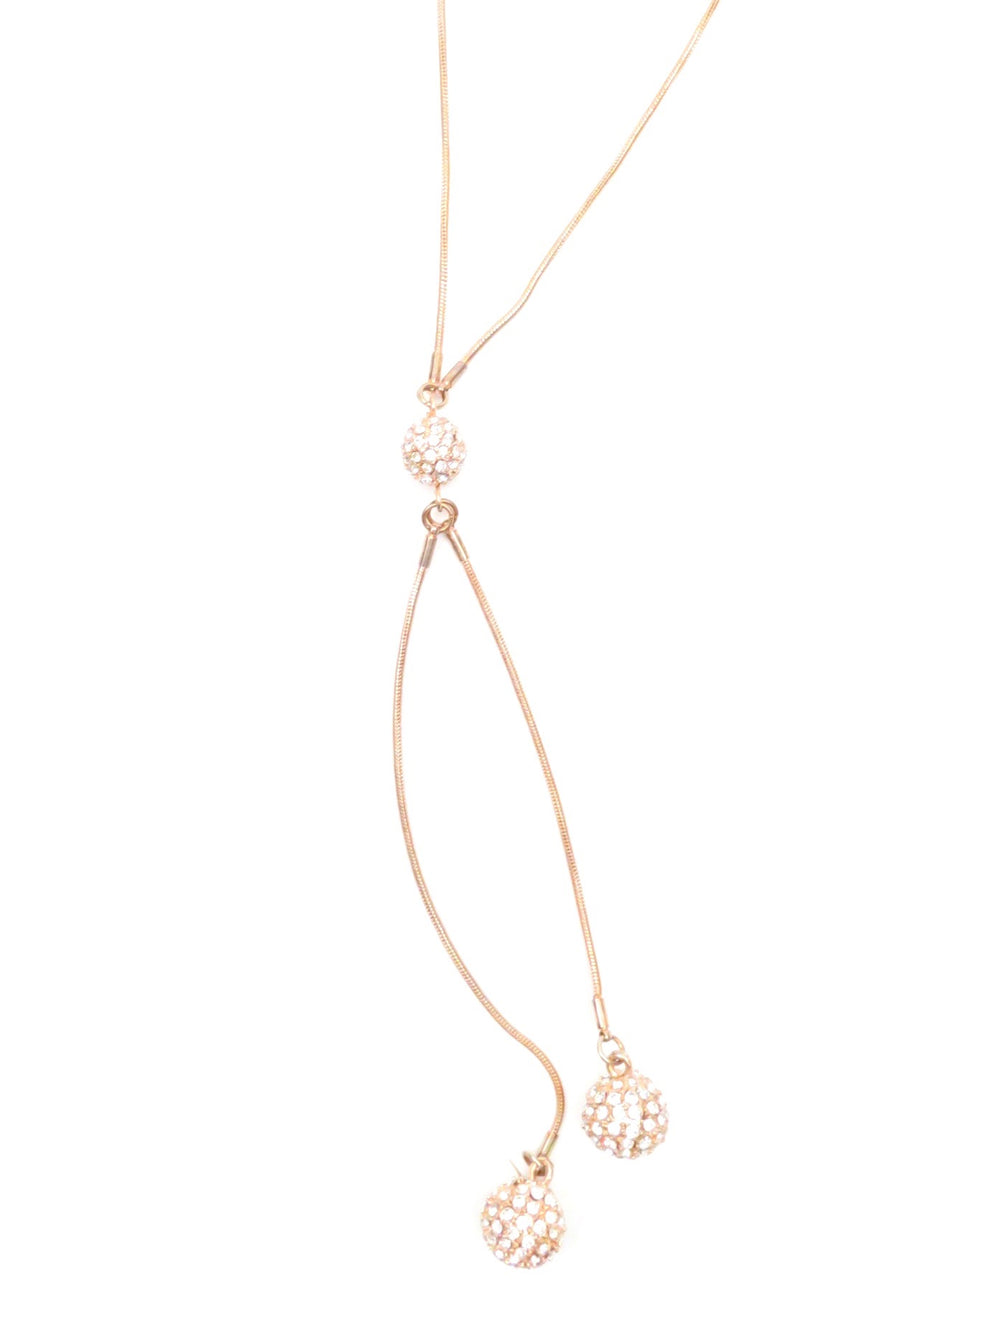 unlabeled rose gold long hanging rhinestone charm necklace. featuring three hanging rhinestone studded ball ornaments. adjustable clasp closure.